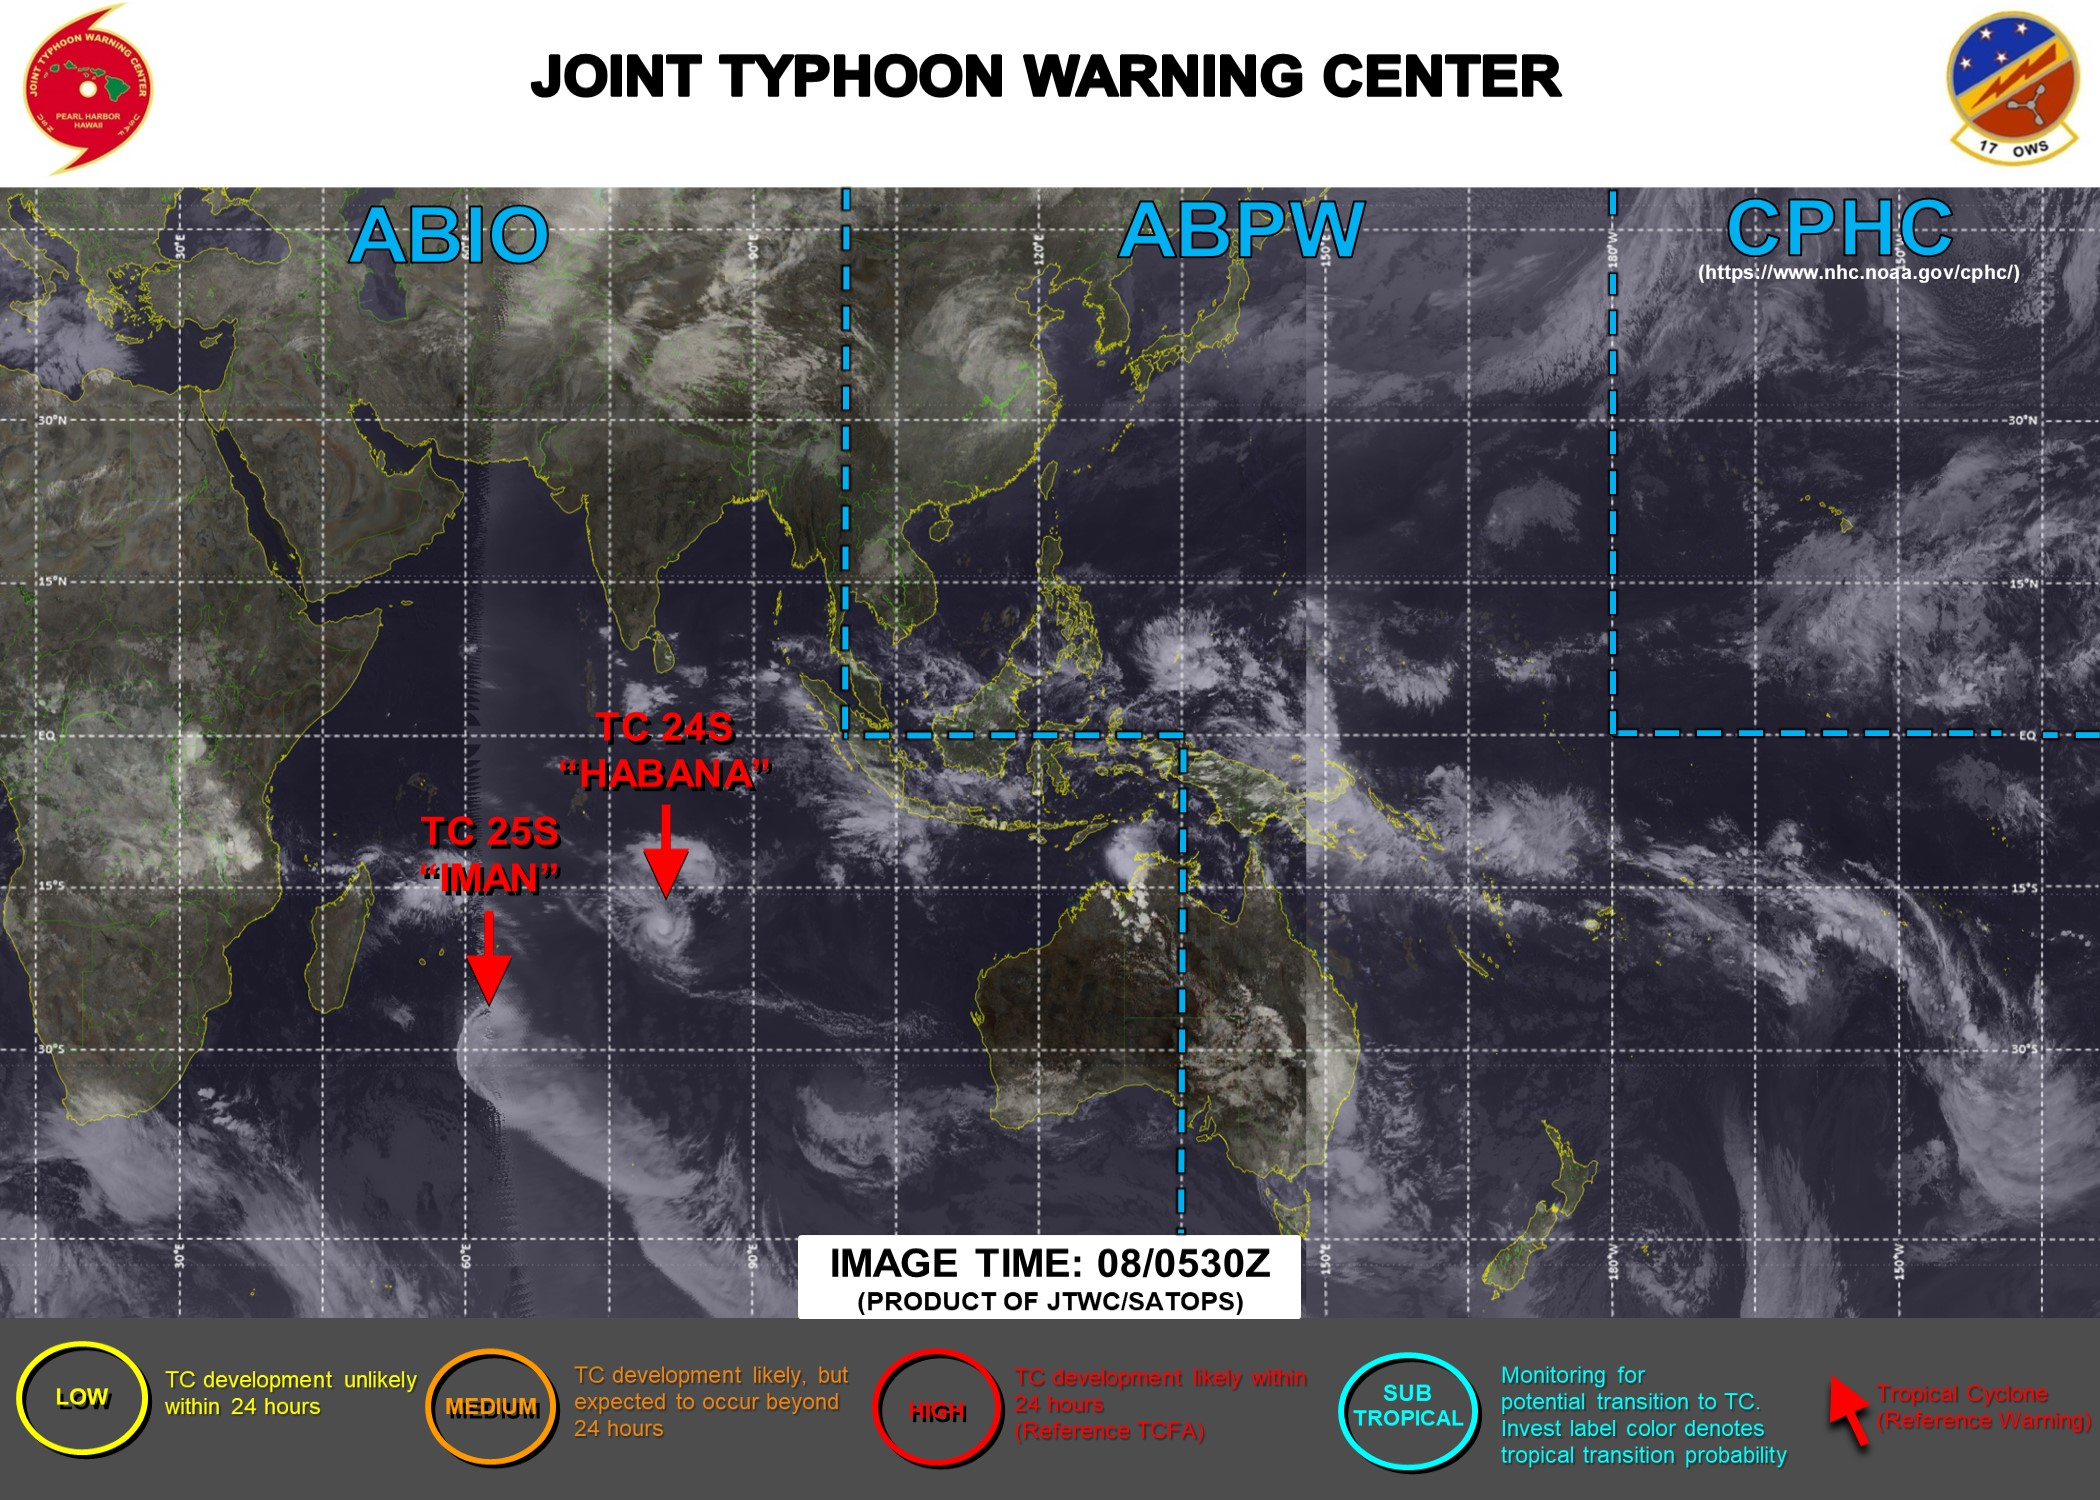 08/09UTC. JTWC IS ISSUING 12HOURLY WARNINGS ON 24S(HABANA). WARNING 3/FINAL WAS ISSUED ON 25S(IMAN). 3 HOURLY SATELLITE BULLETINS ARE ISSUED FOR BOTH SYSTEMS.